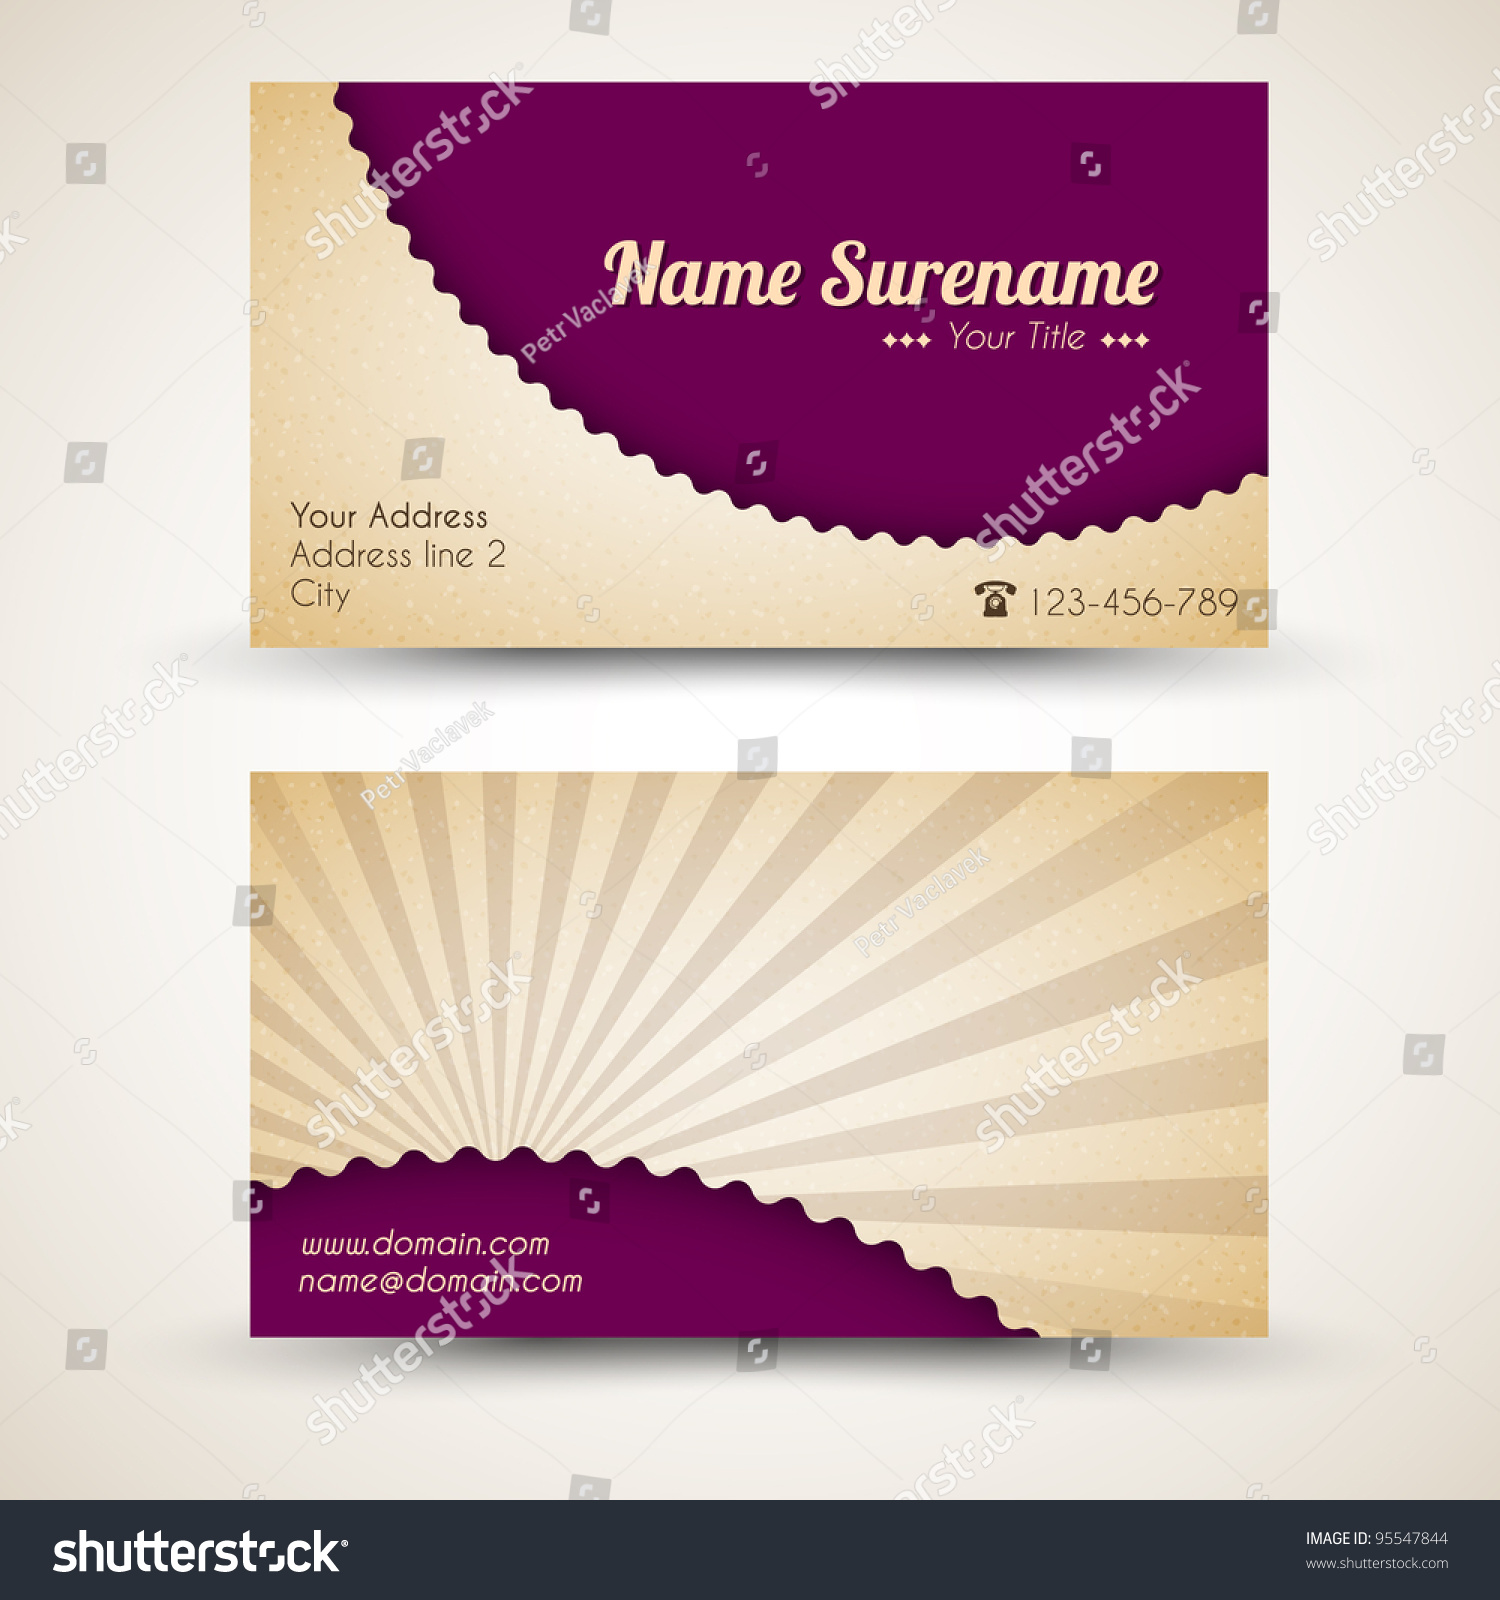 Business cards charlotte image collections free business cards business cards charlotte images free business cards business business cards best handyman business card executive business magicingreecefo Gallery